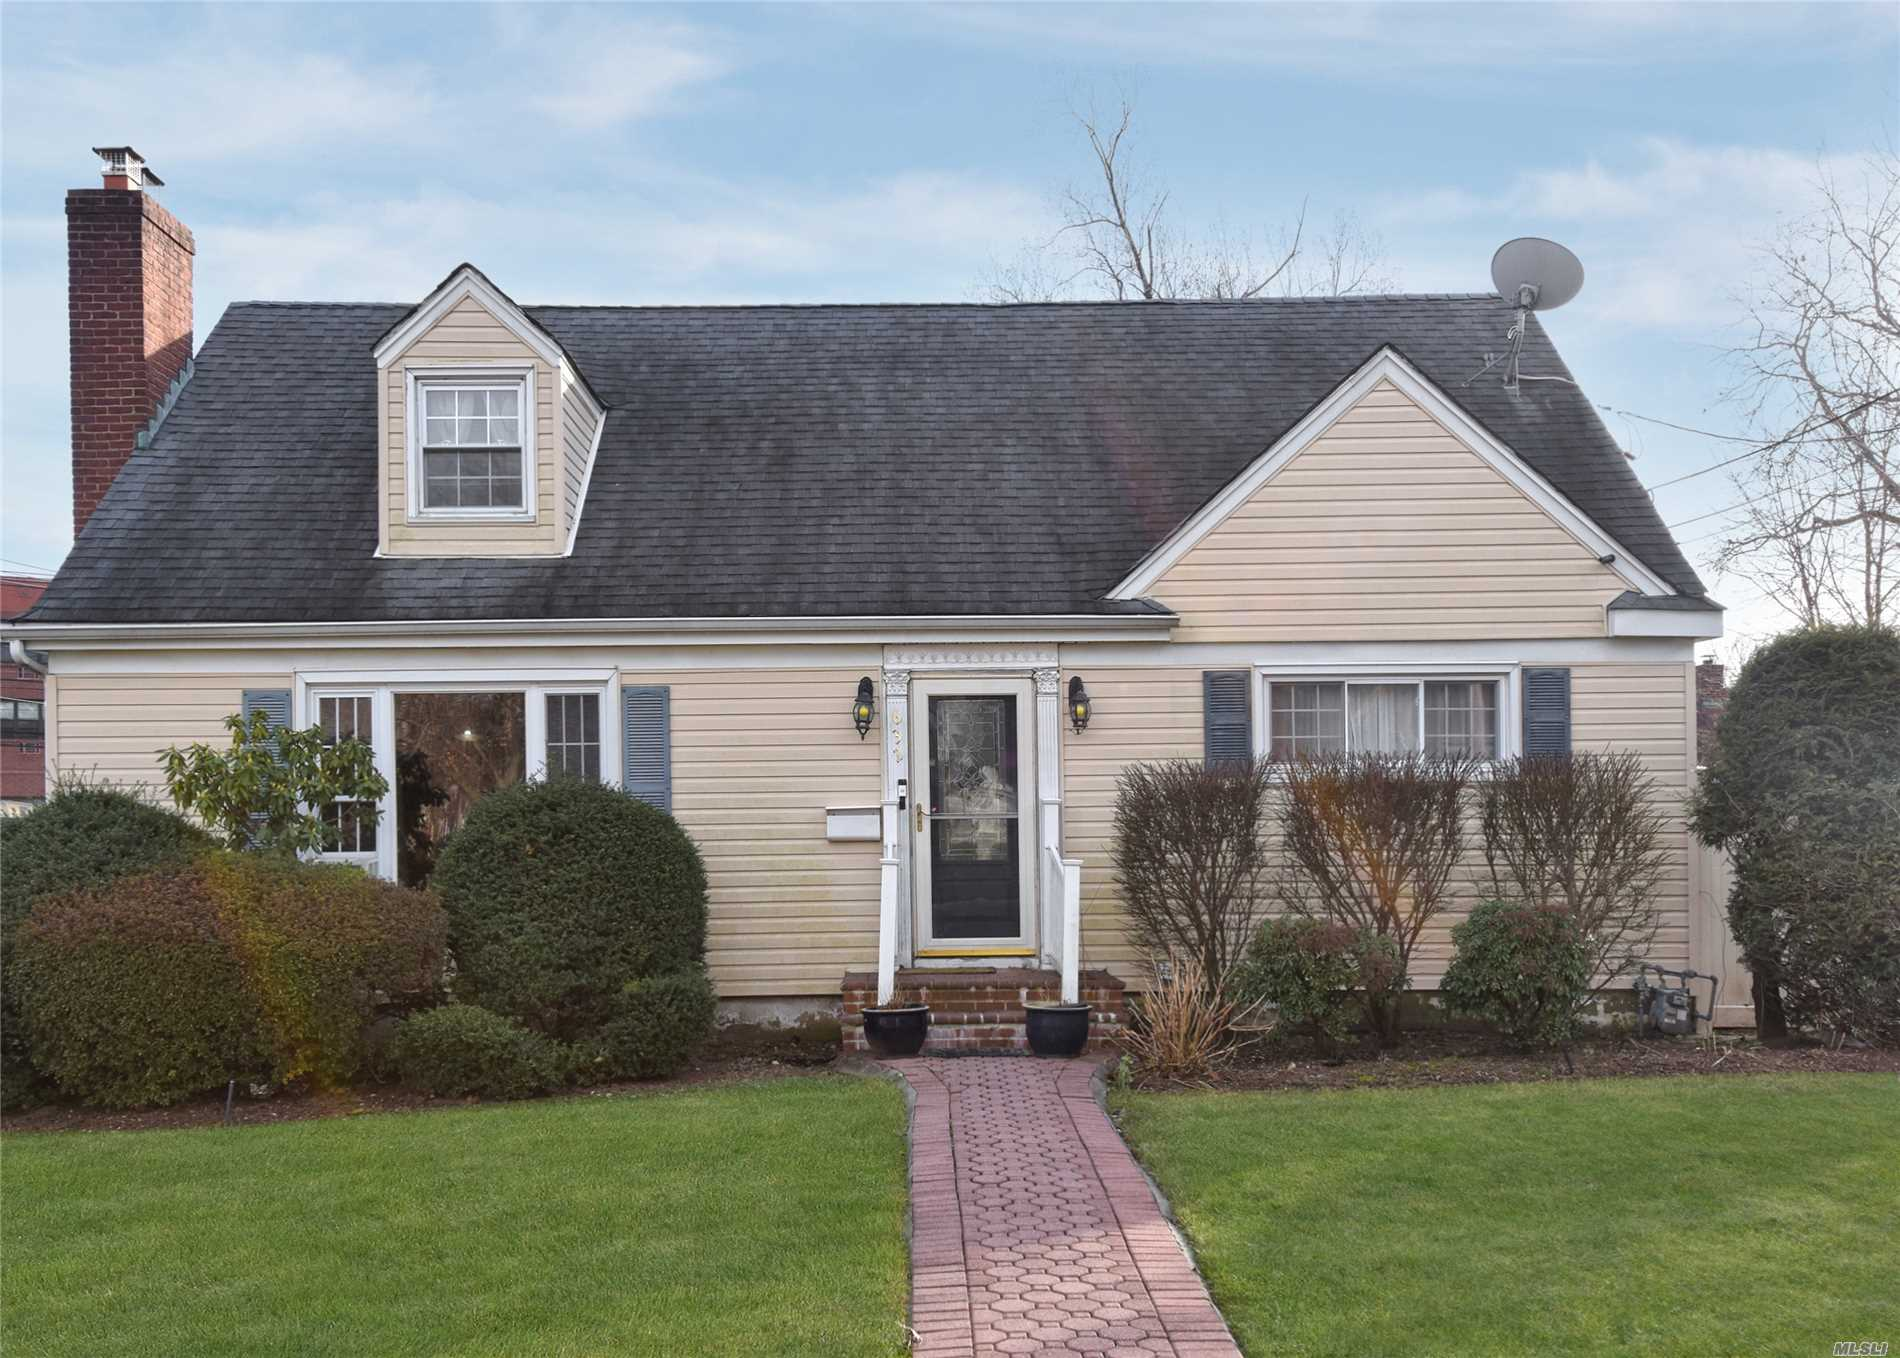 Beautiful Expanded Cape Situated On A Quiet Tree-Lined Block In The Village Of Westbury. Very Close To Pakways, Lirr Station, Restaurants And Shopping Malls. 4 Bedrooms And 3 Baths, Fully Finished Basement With Living Area And Movie Theater Room. Huge, Private Backyard With Beautiful Pond And A Deck.